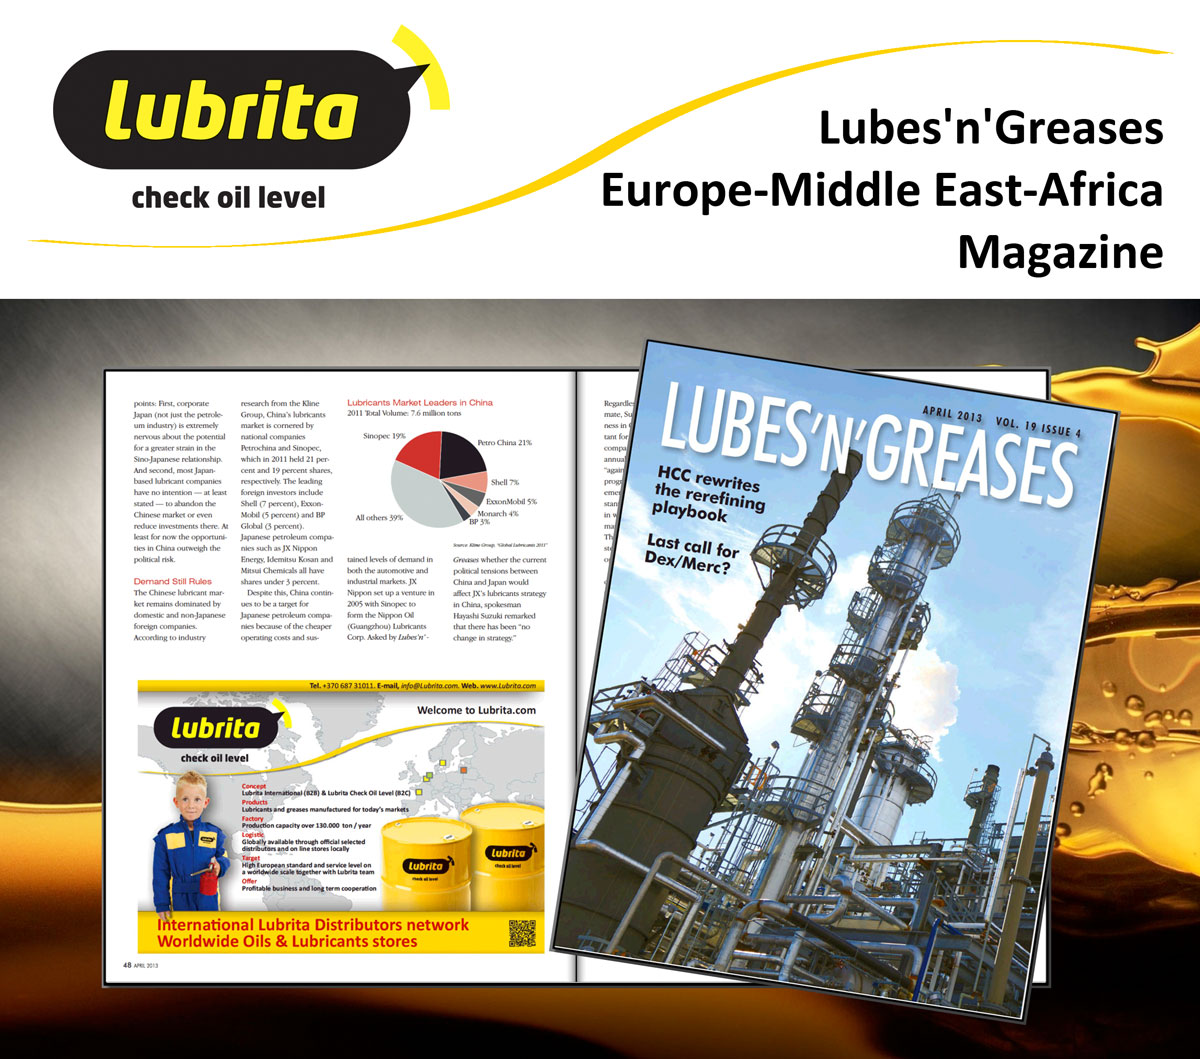 Lubrita_LNG_Lubes and Greases facebook.jpg